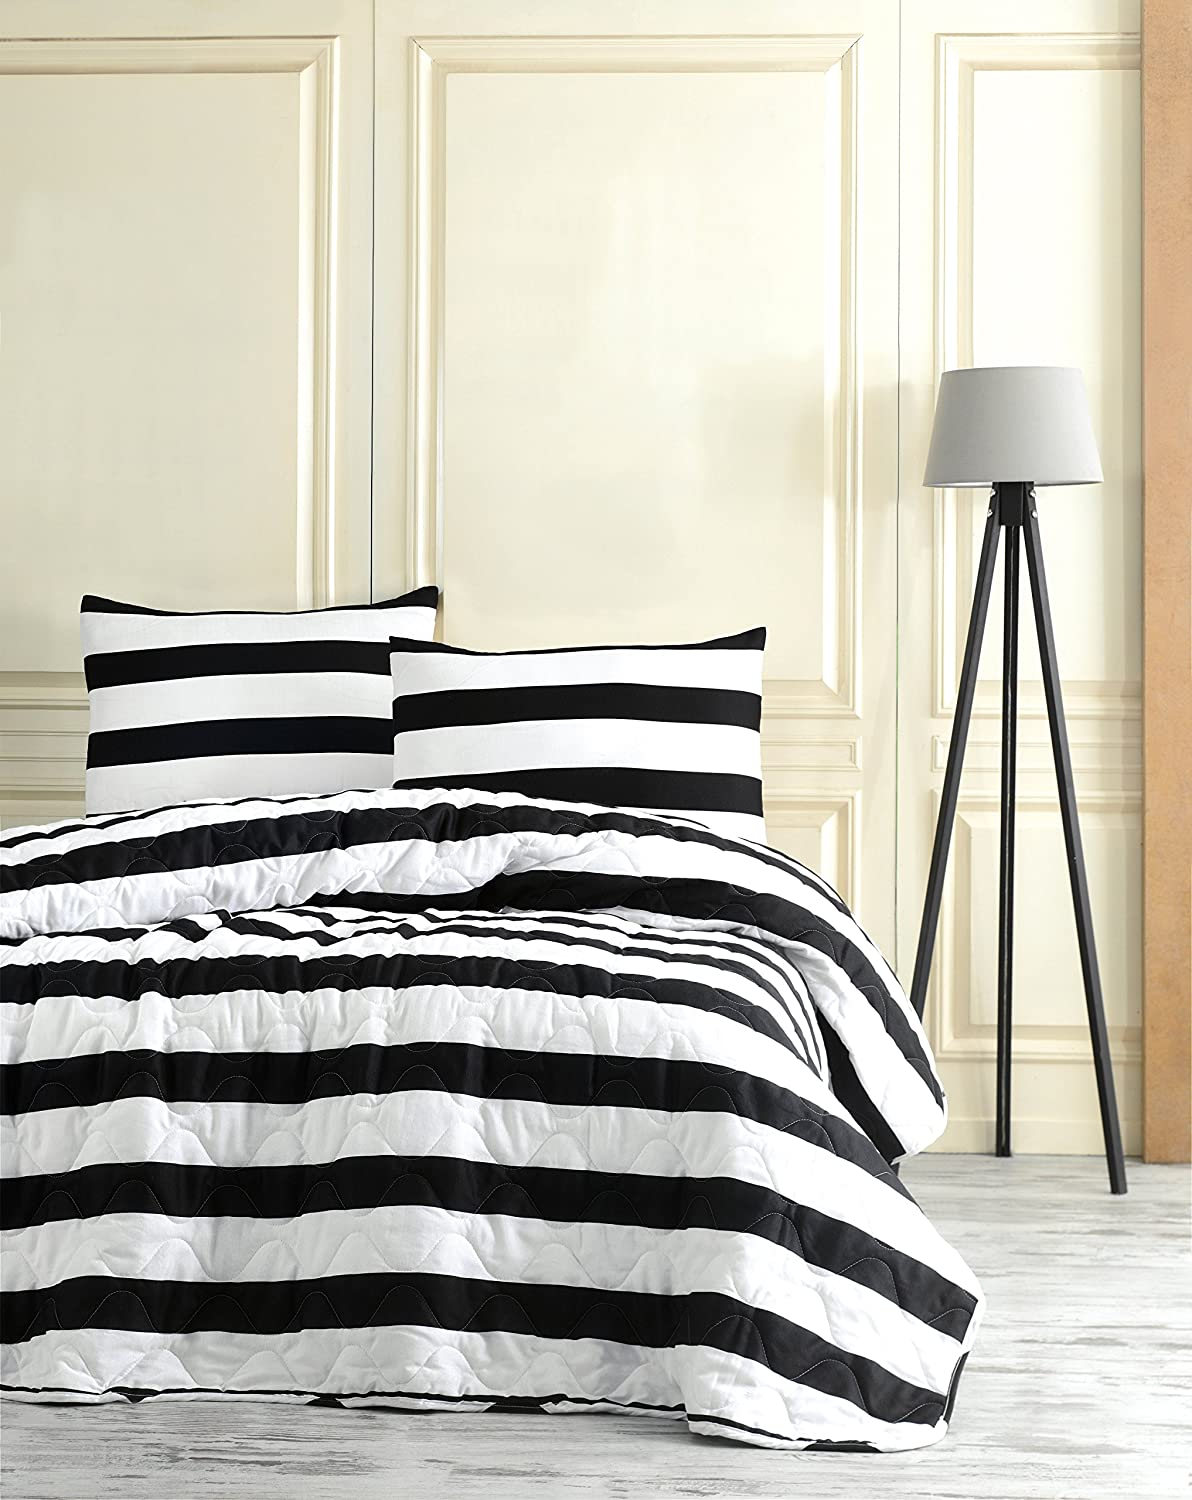 Black and White Stripped Bedding, Full/Queen Size Bedspread/Coverlet Set, Kids Bedroom, 3 PCS, DecoMood